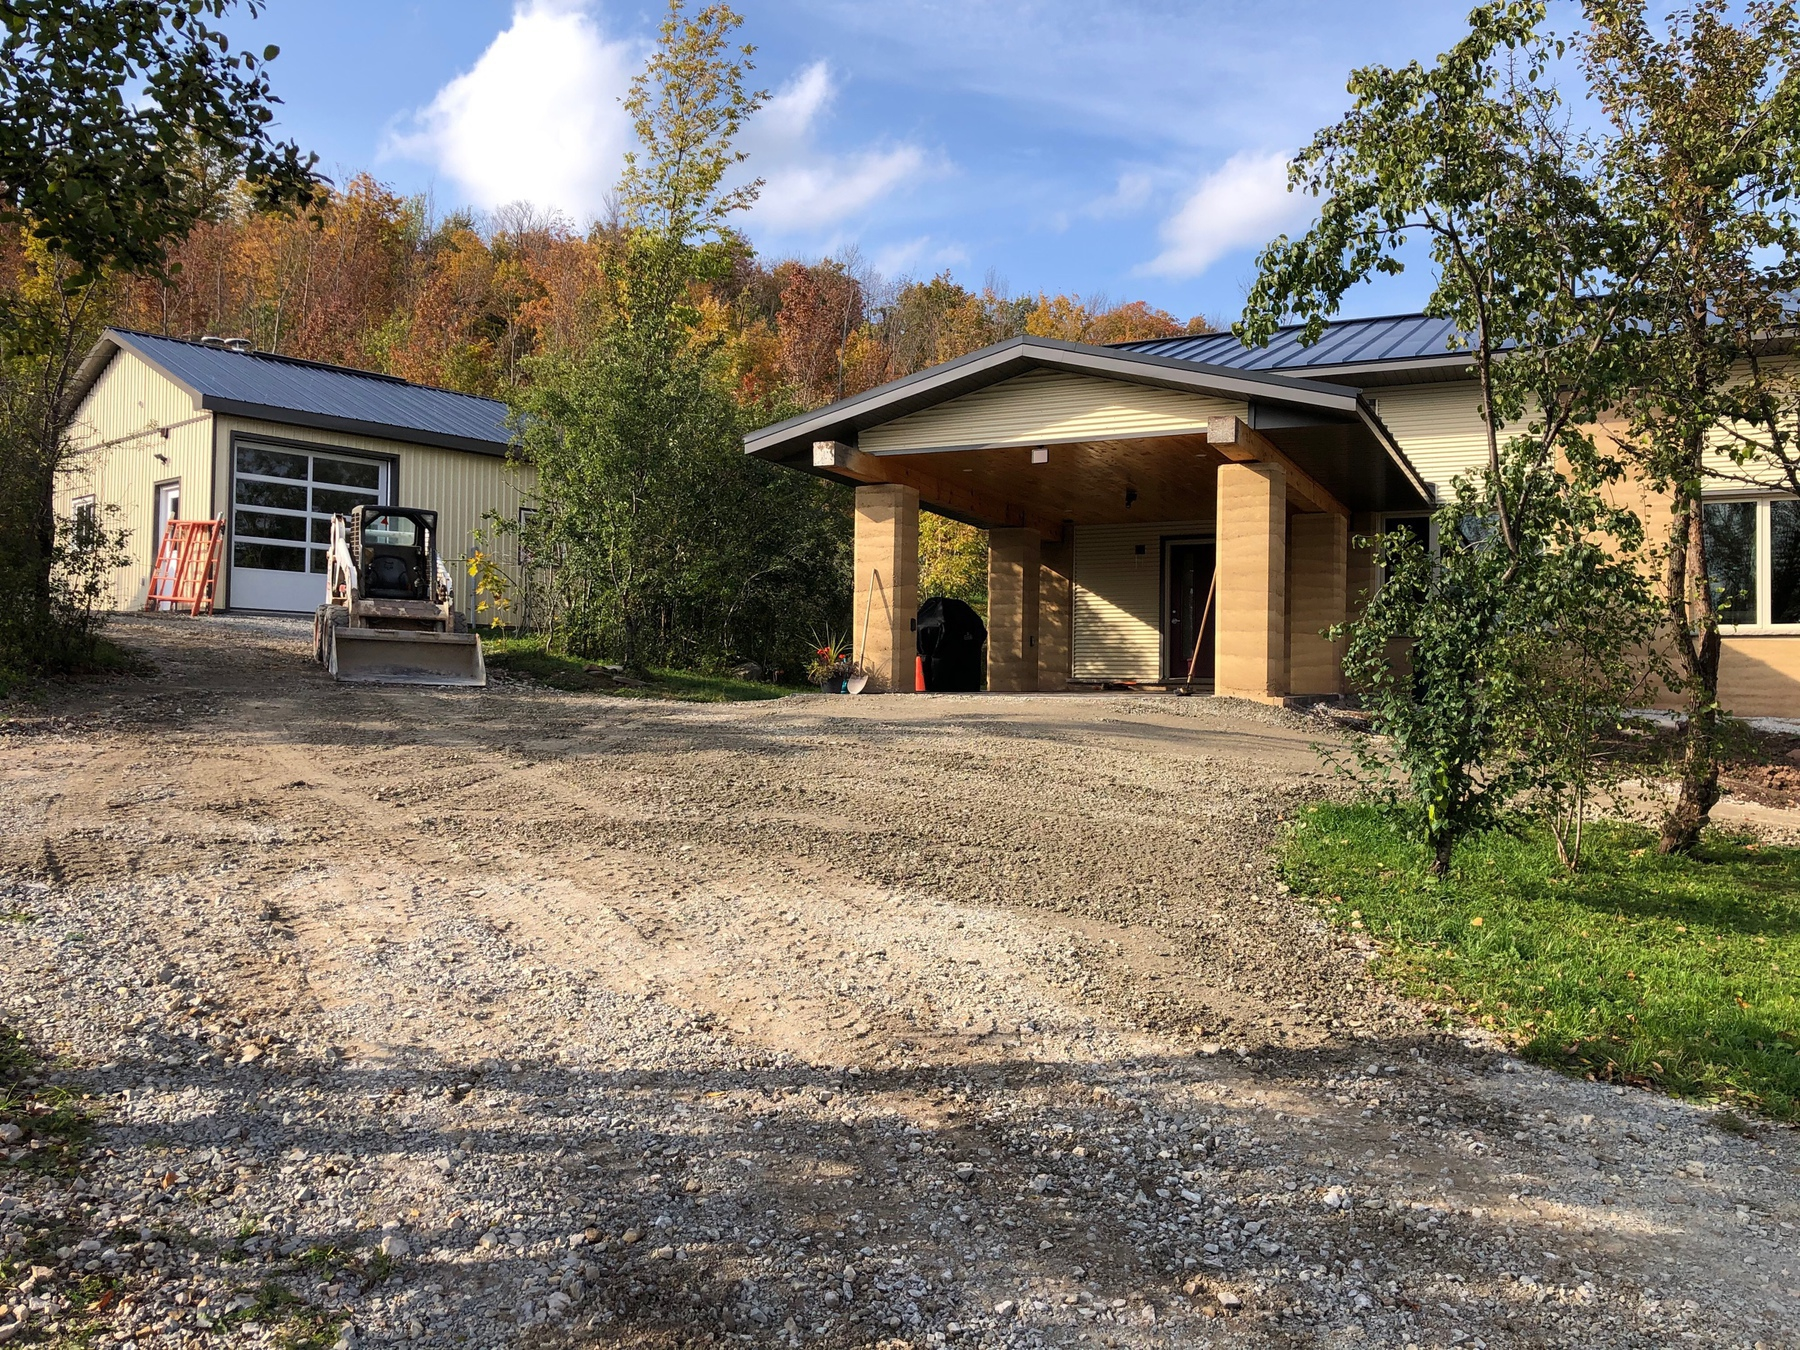 fresh gravel on a driveway leading into a carport. a Bobcat loader and a second building wkyh a garage door are in the background